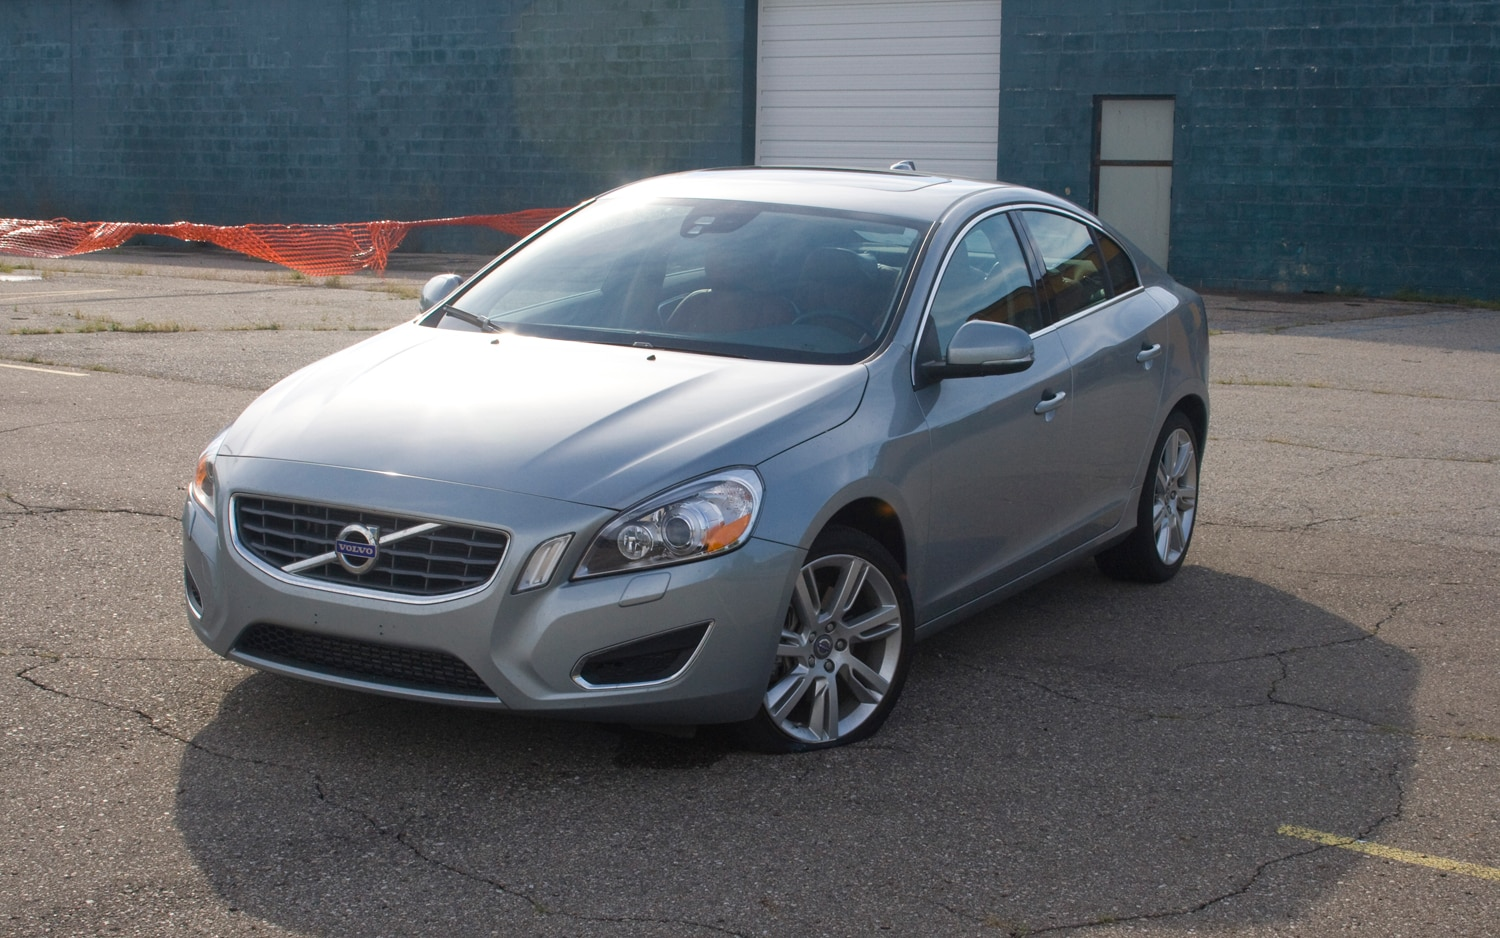 2012 Volvo S60 T6 AWD - Four Seasons Update - August 2011